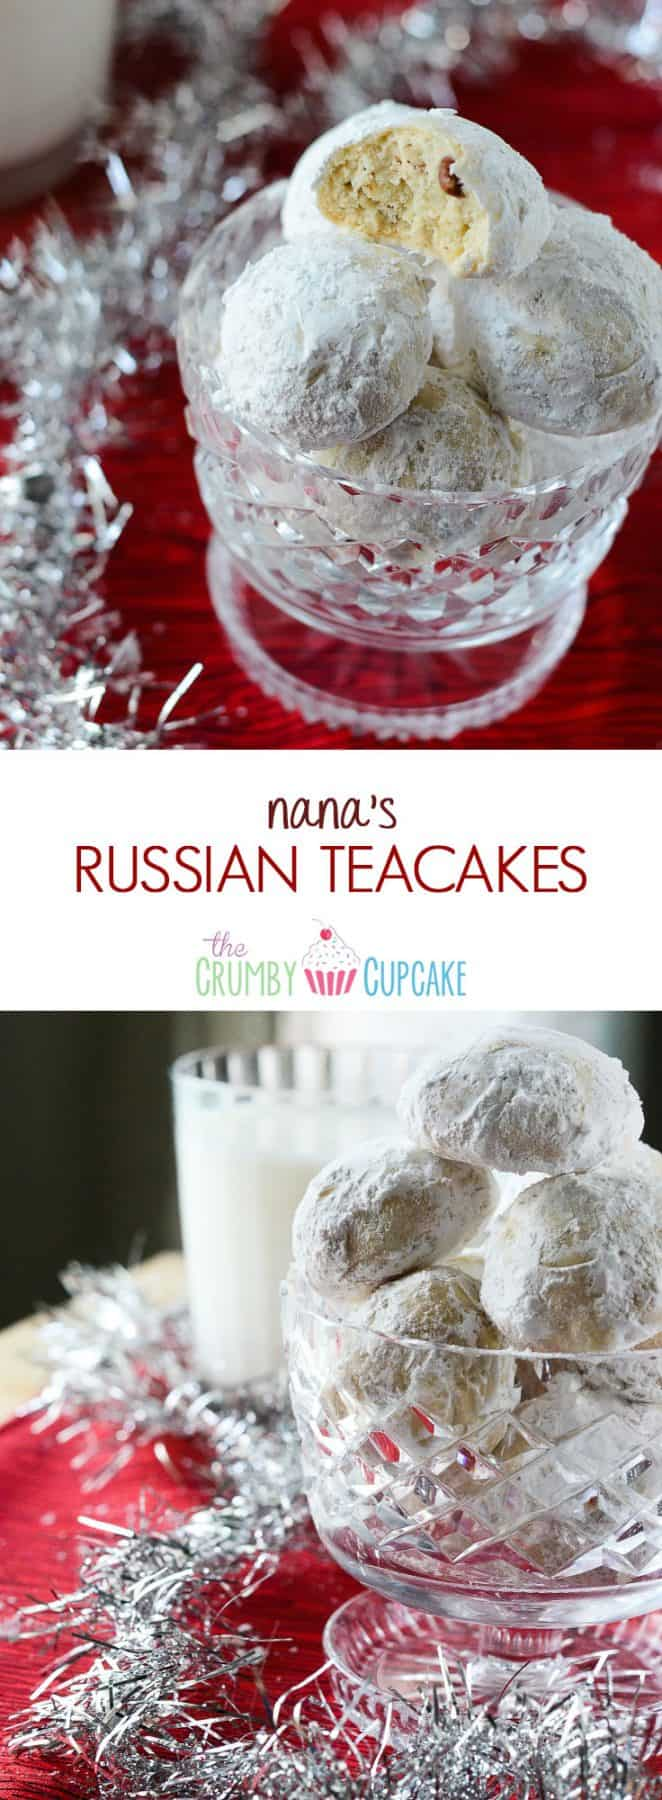 "Straight out of Nana's recipe book, Nana's Russian Teacakes AKA ""nut balls"" are the same soft, buttery, melt-in-your-mouth teacakes found all over the world at Christmastime."